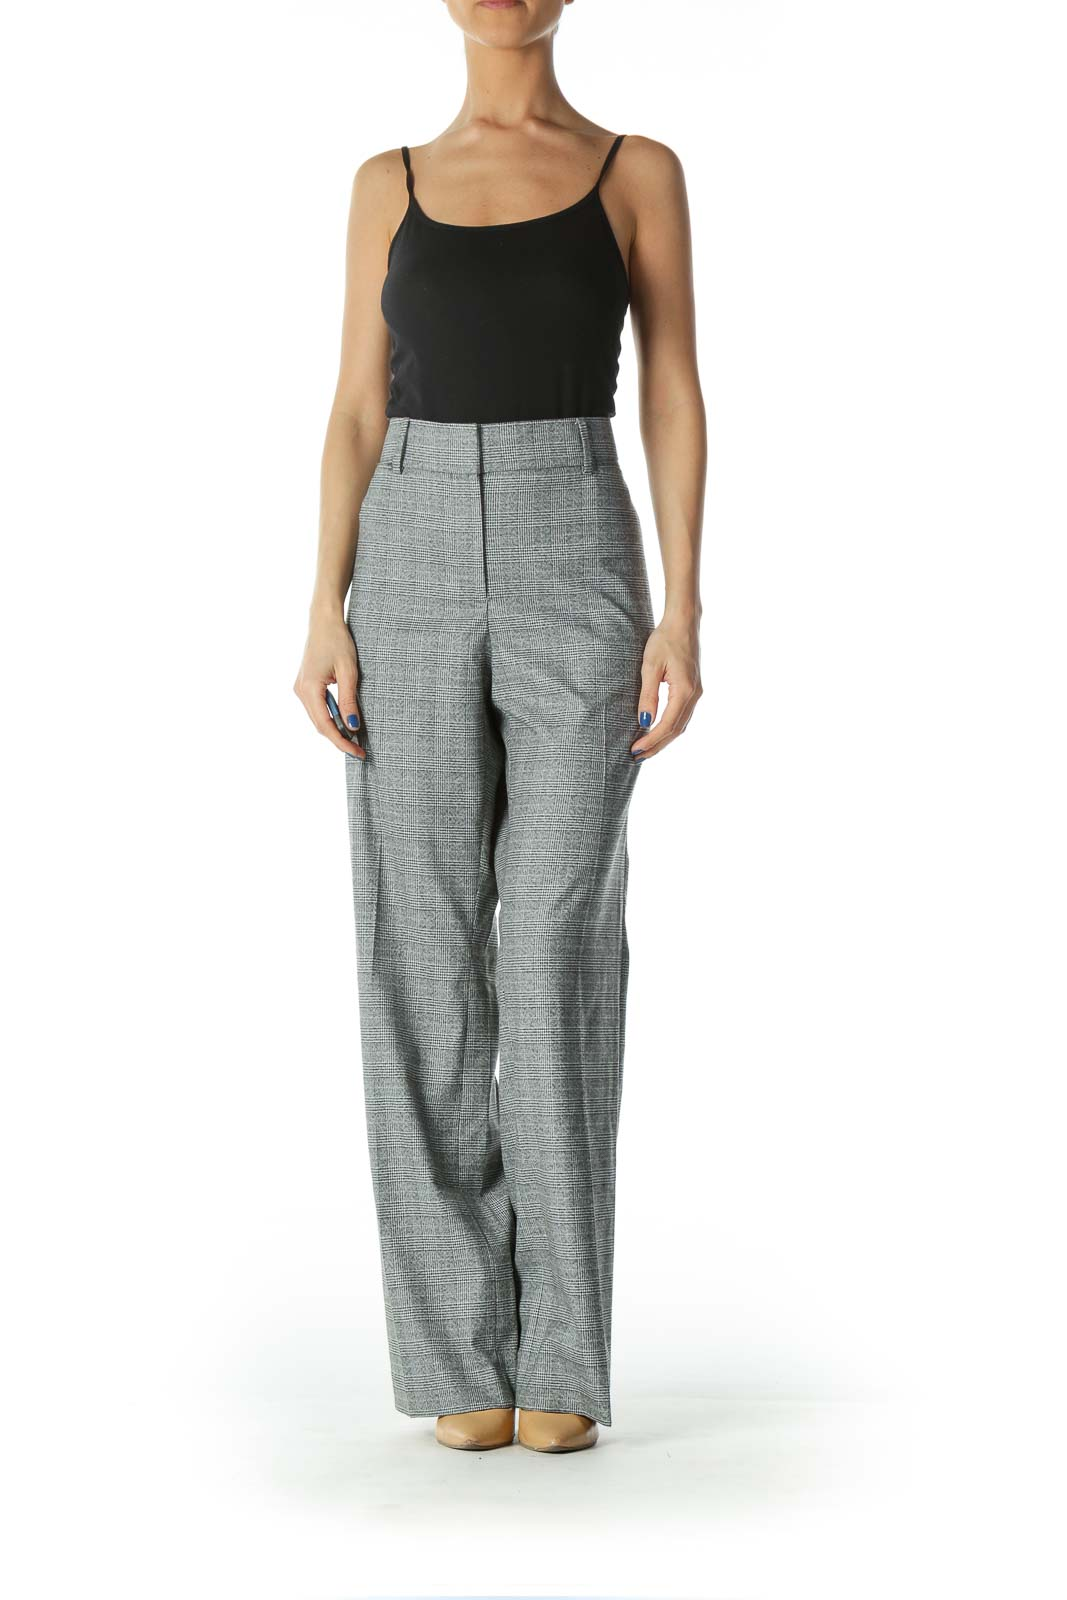 Grey Beige and Black Glen Check Suit Pant